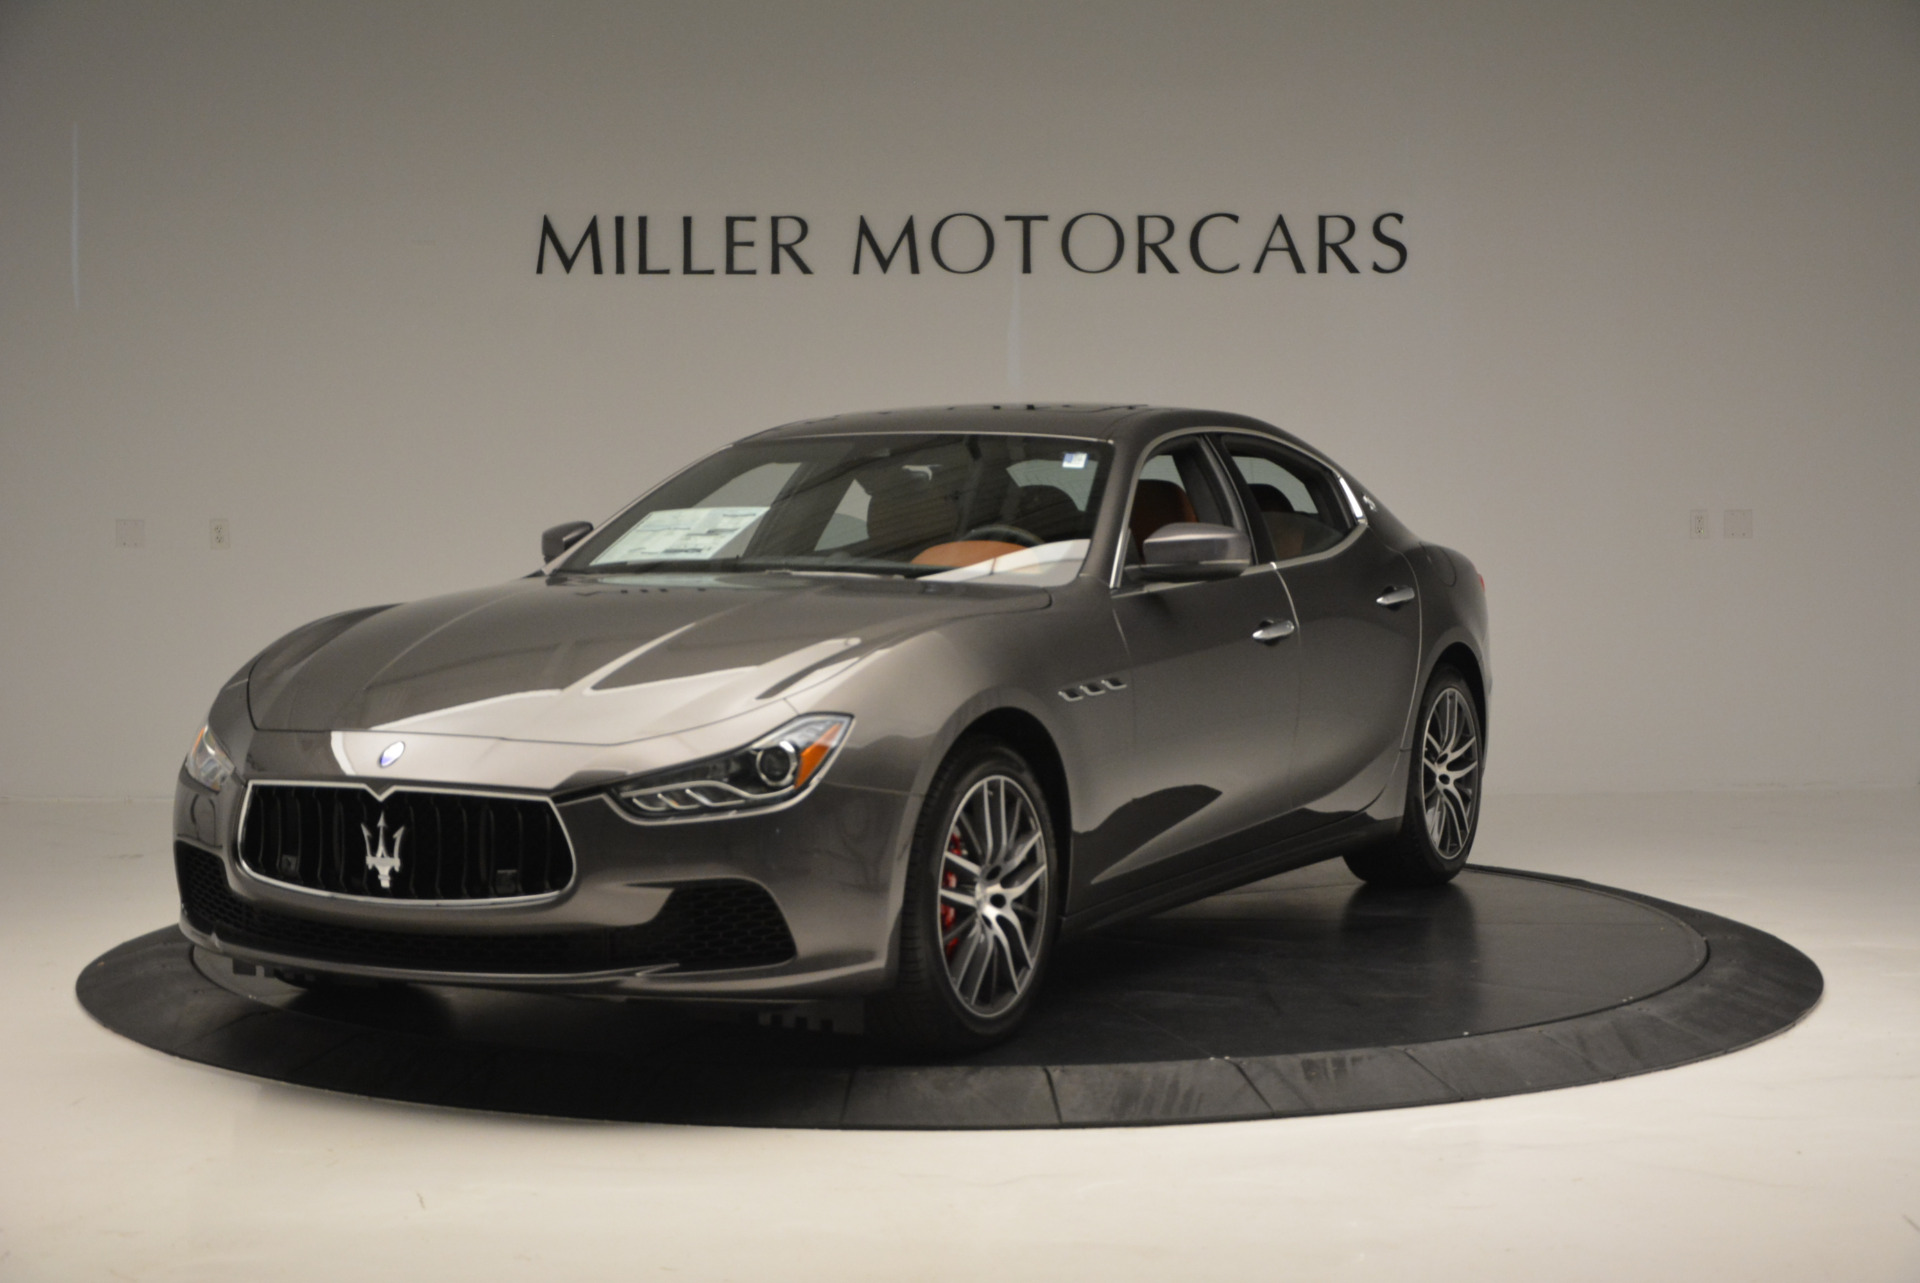 New 2017 Maserati Ghibli S Q4 For Sale In Greenwich, CT